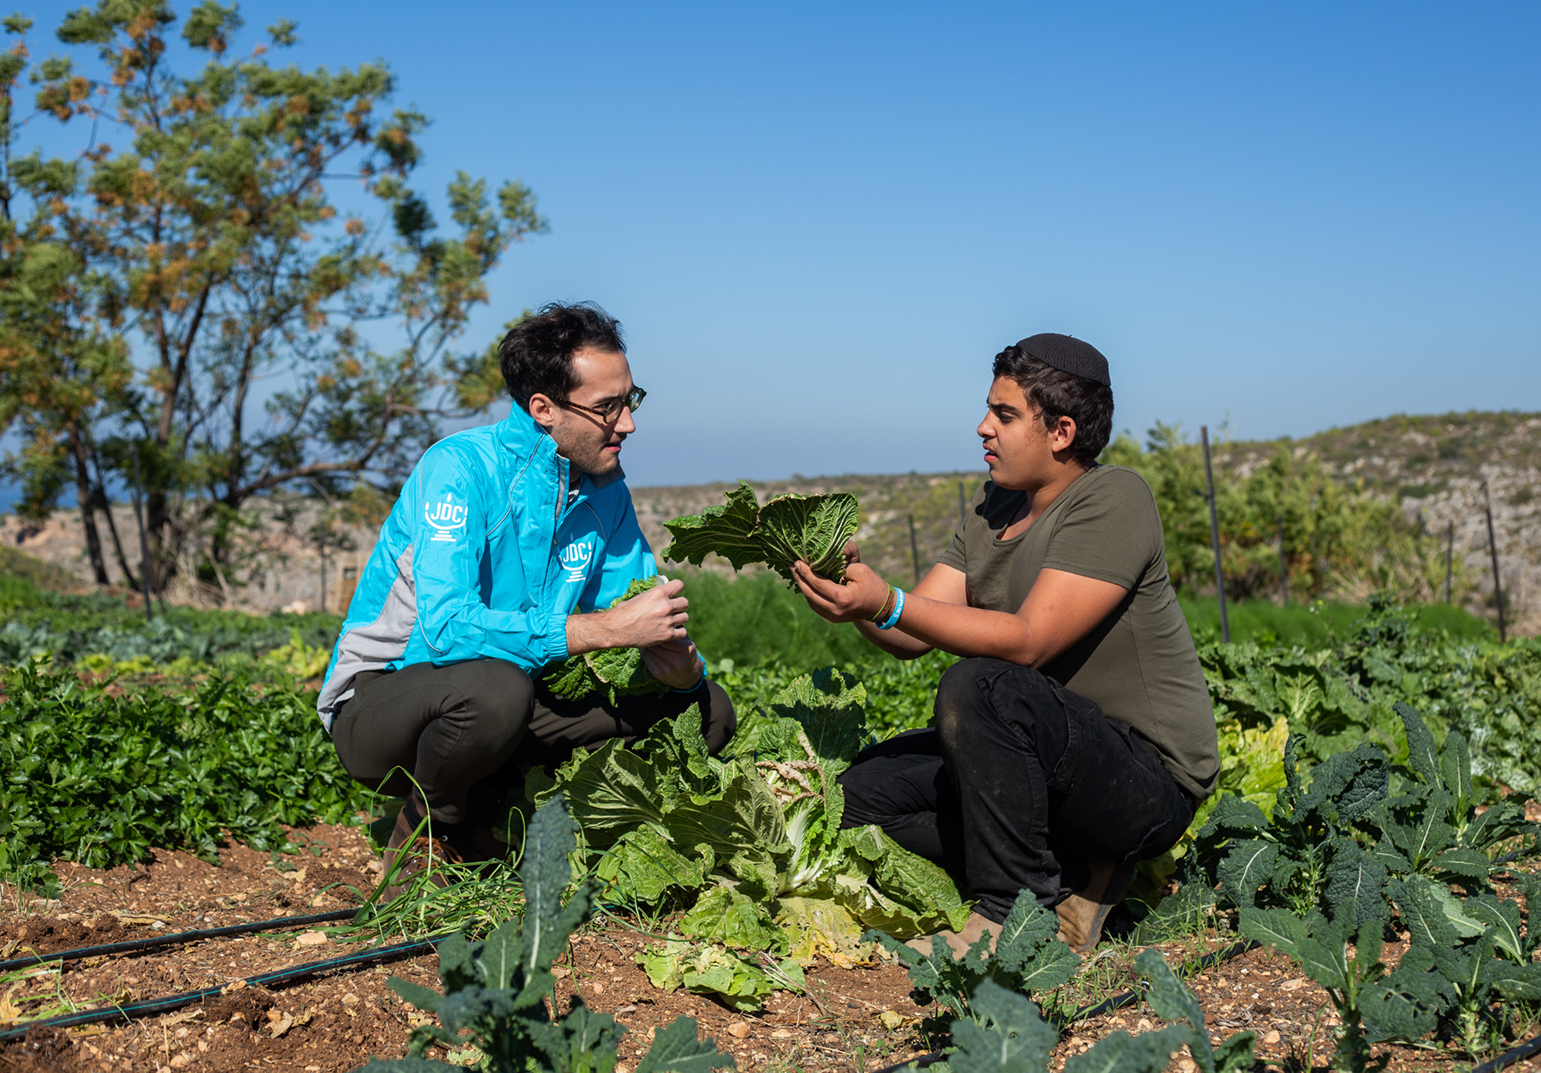 JDC volunteer crouching with a farmer holding a piece of lettuce in his field in Israel.